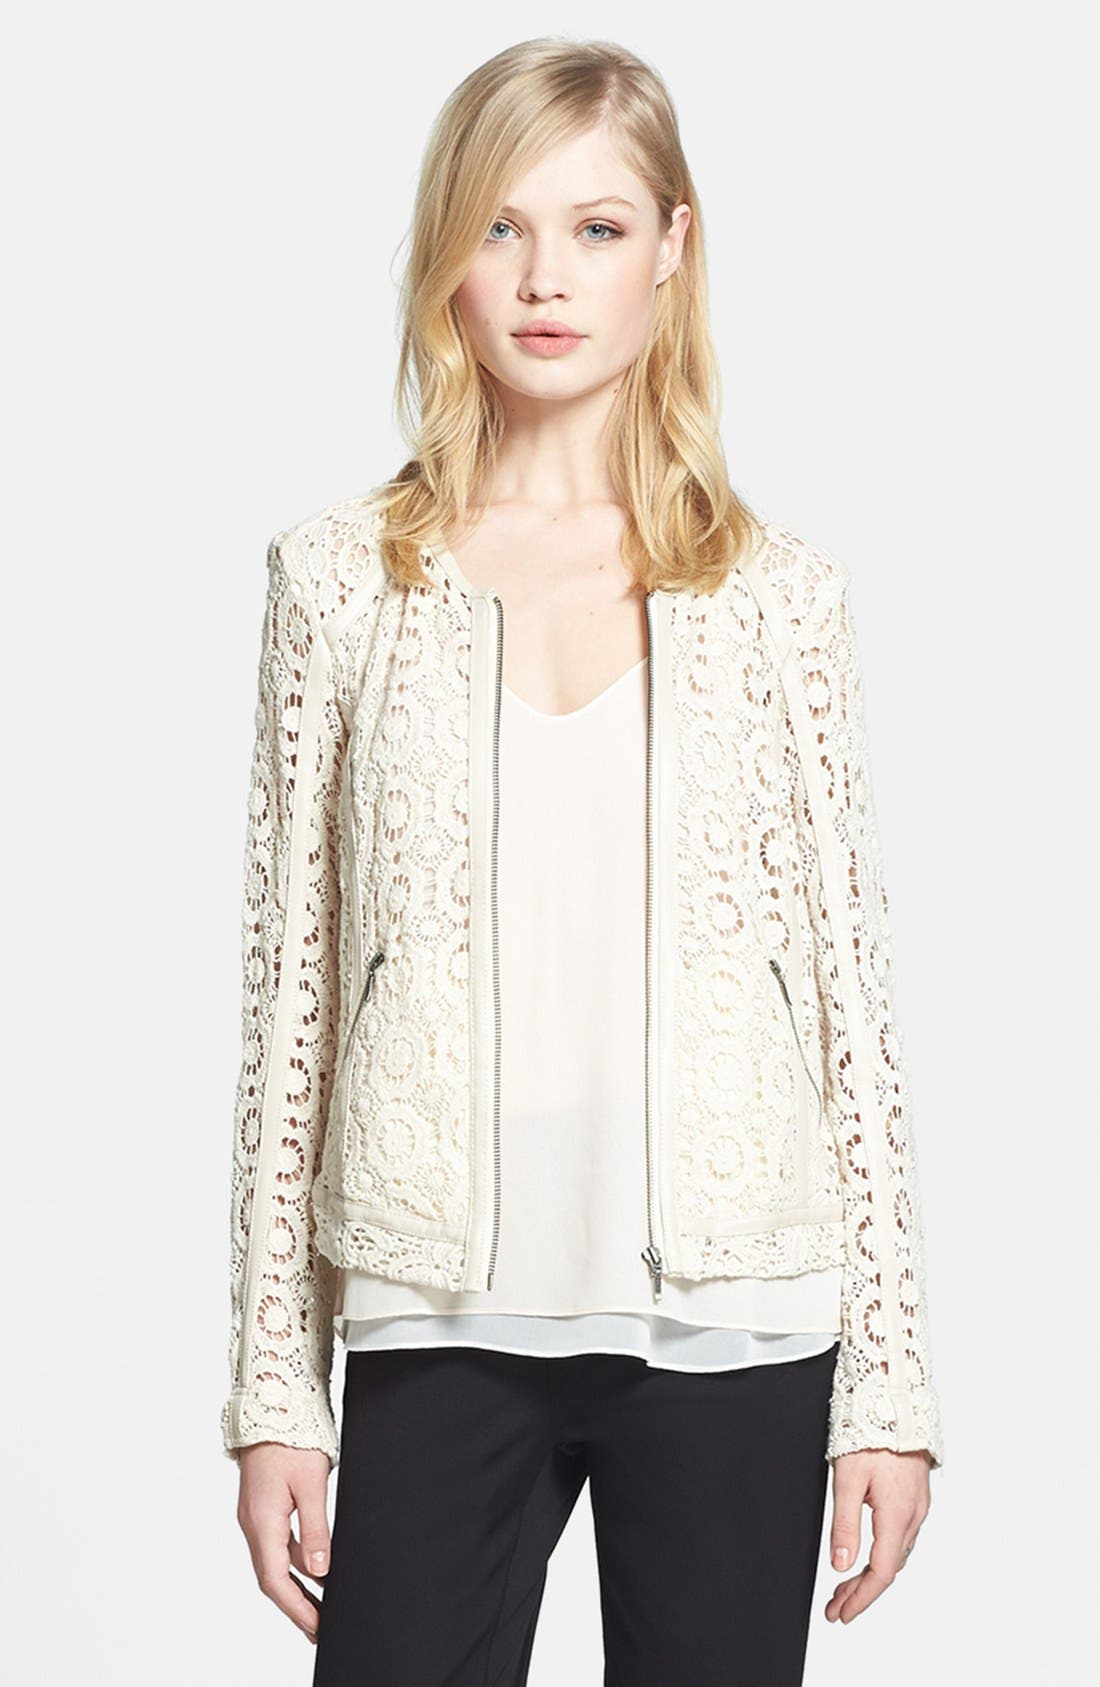 Alternate Image 1 Selected - Chelsea28 Faux Leather Trim Crocheted Jacket